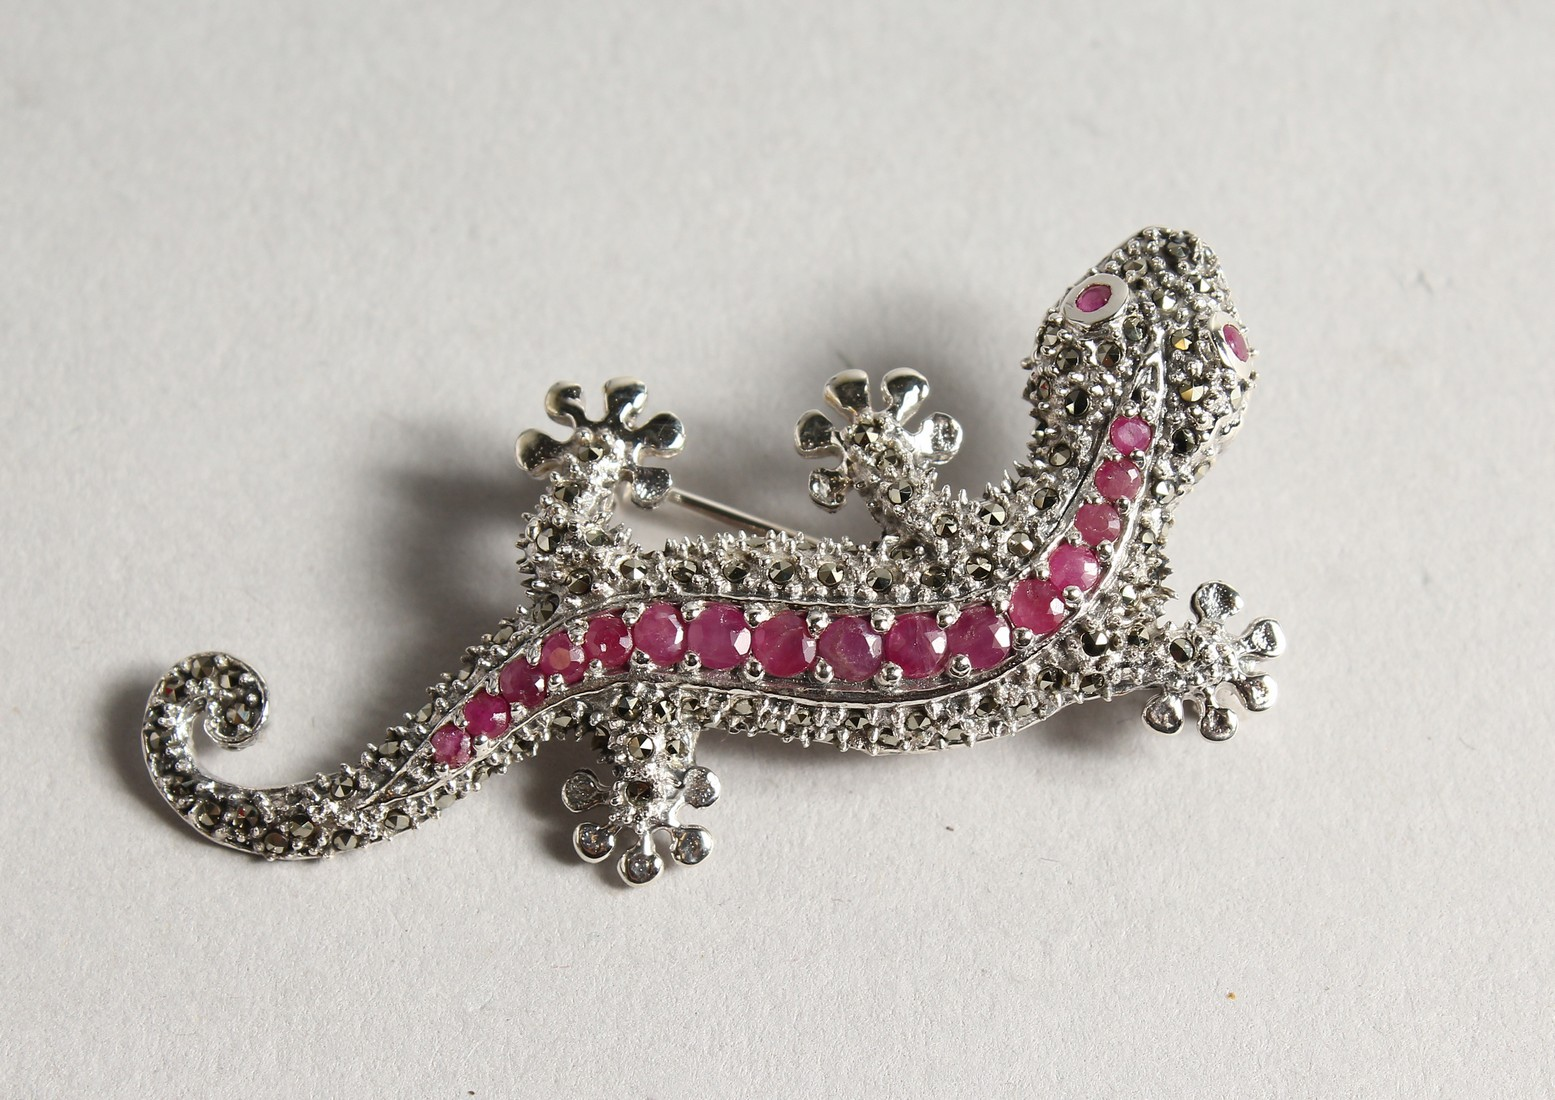 A SILVER MARCASITE AND RUBY LIZARD BROOCH.